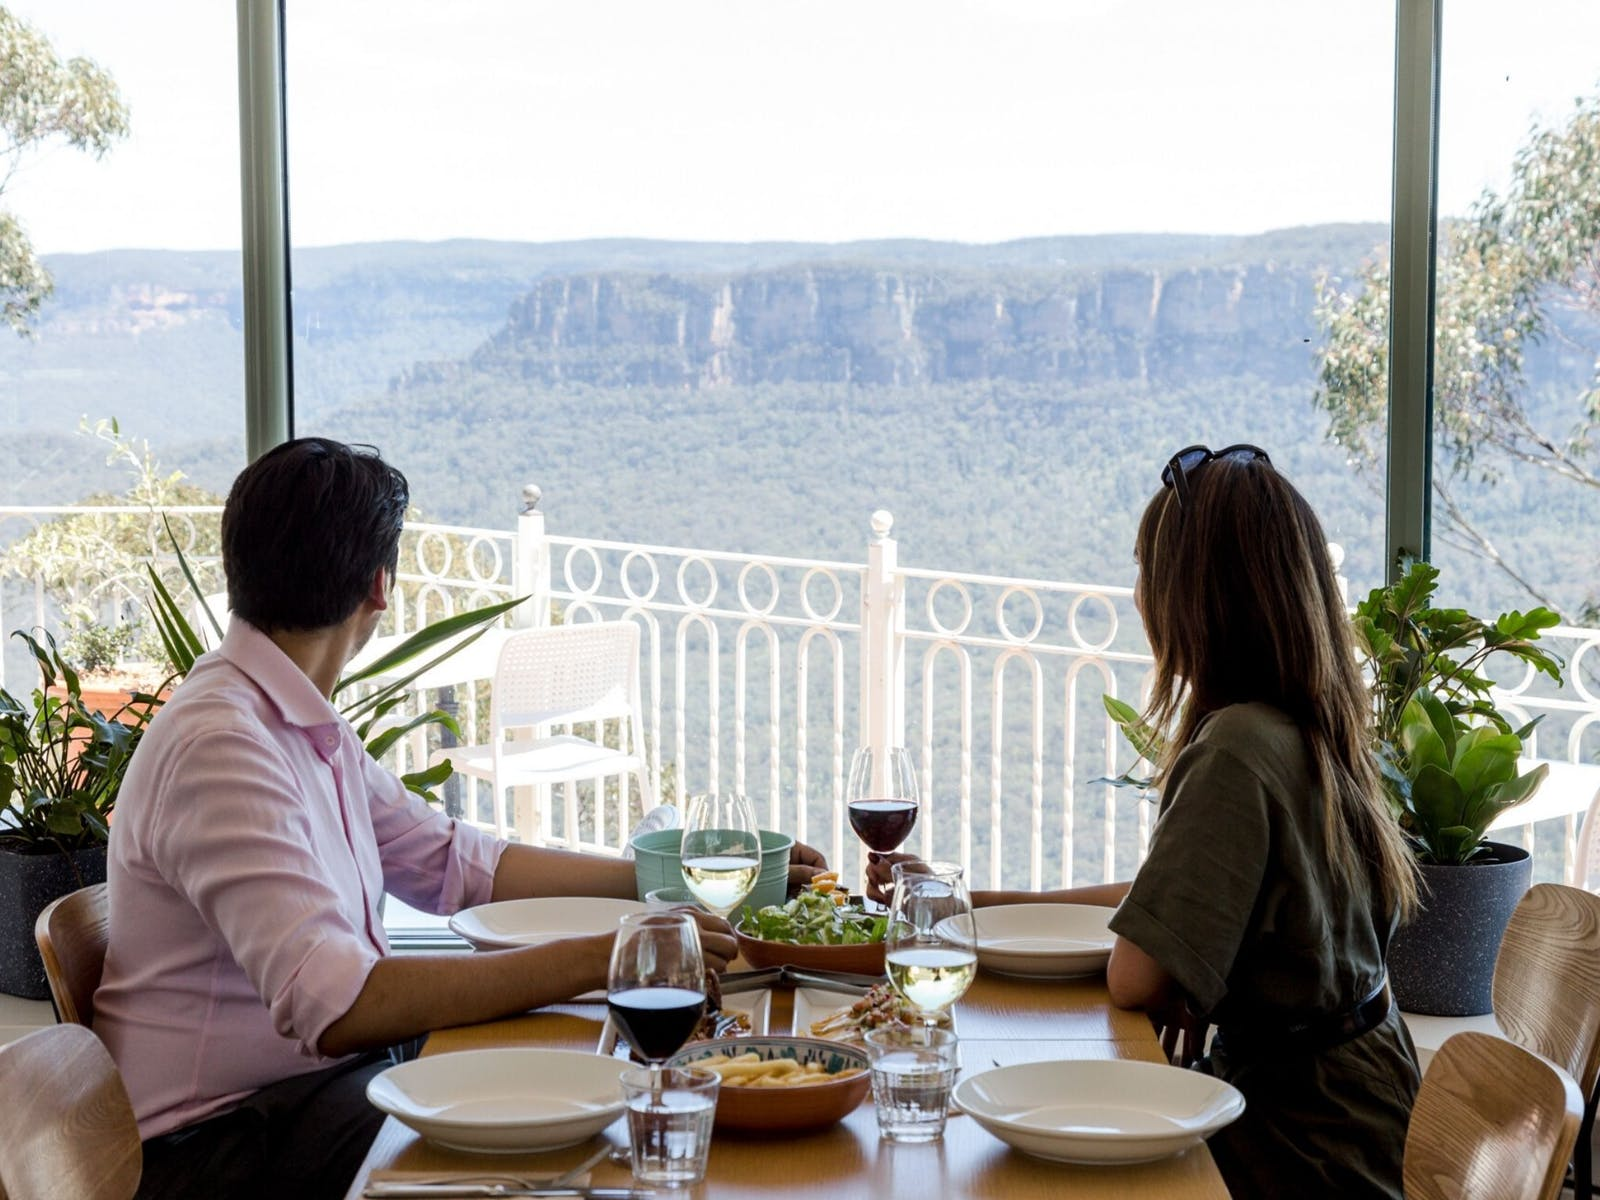 Image for Christmas Day Lunch at The Lookout Echo Point